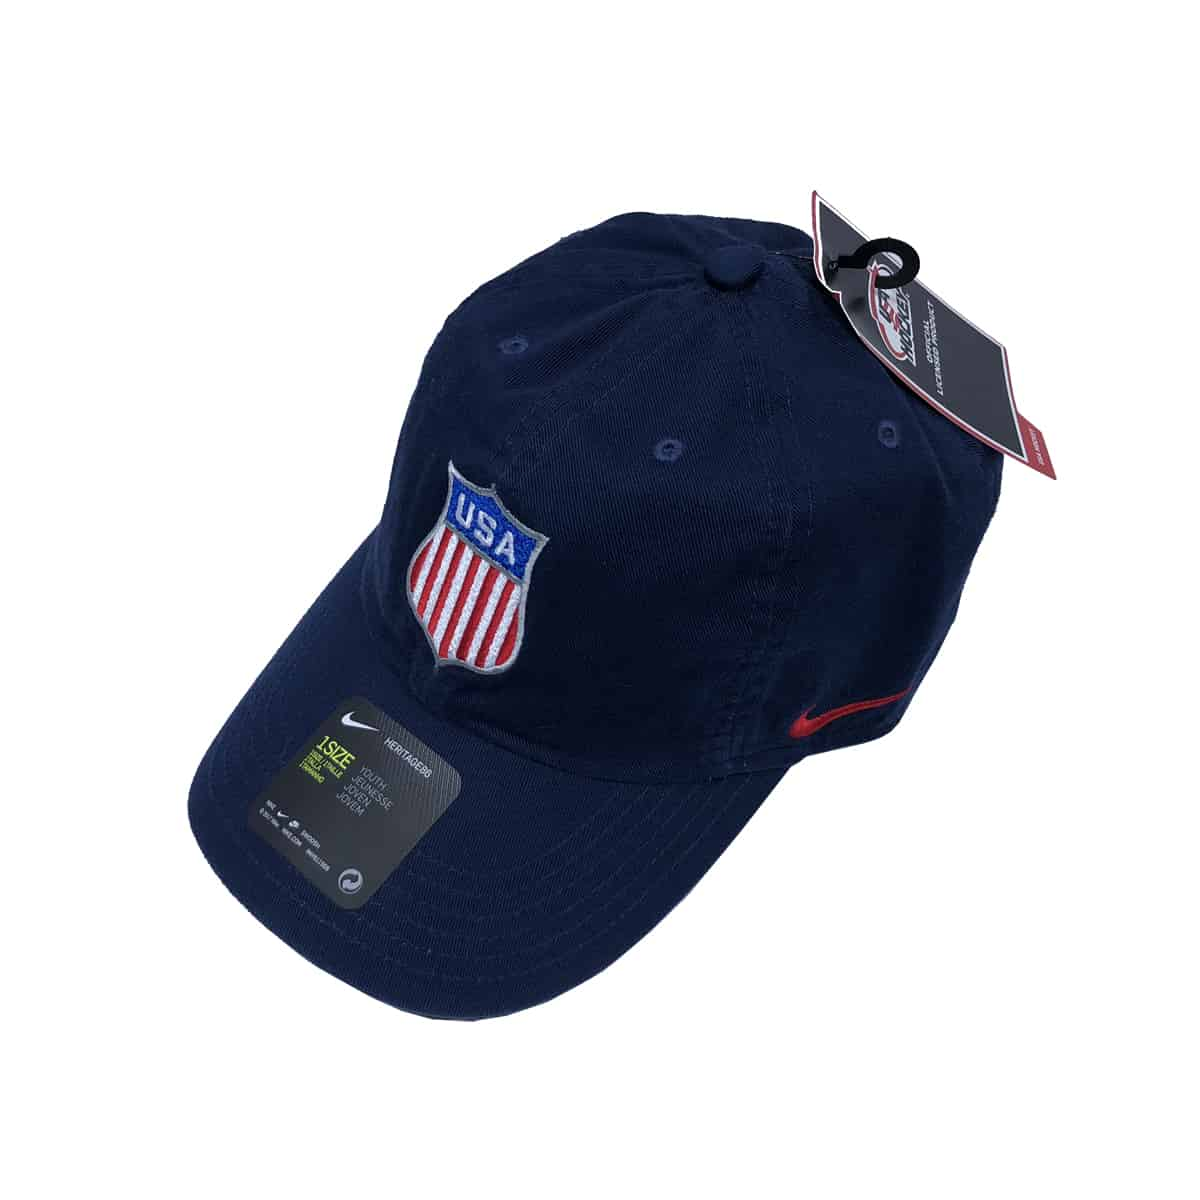 USA Hockey Heritage 86 Hat in Navy (Front)